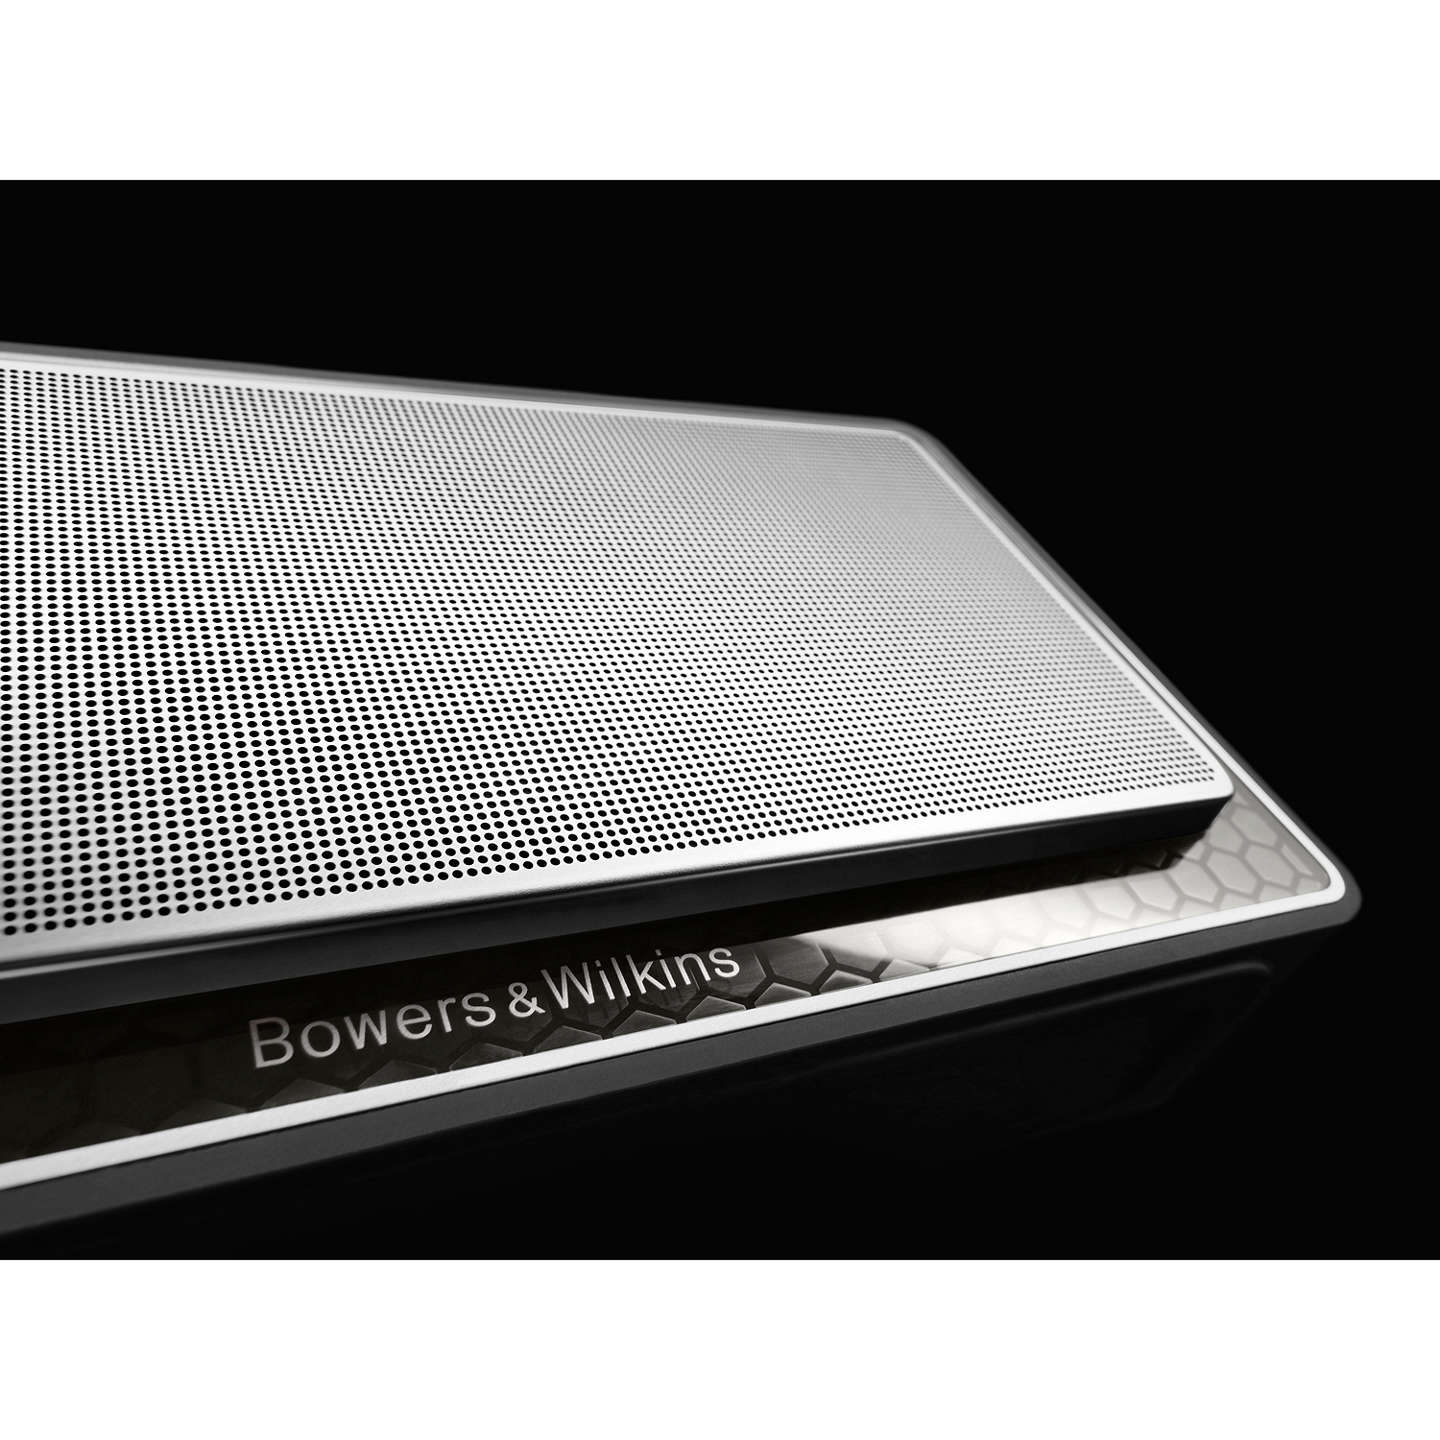 Bowers & Wilkins T7 Portable Wireless Bluetooth Speaker At John Lewis